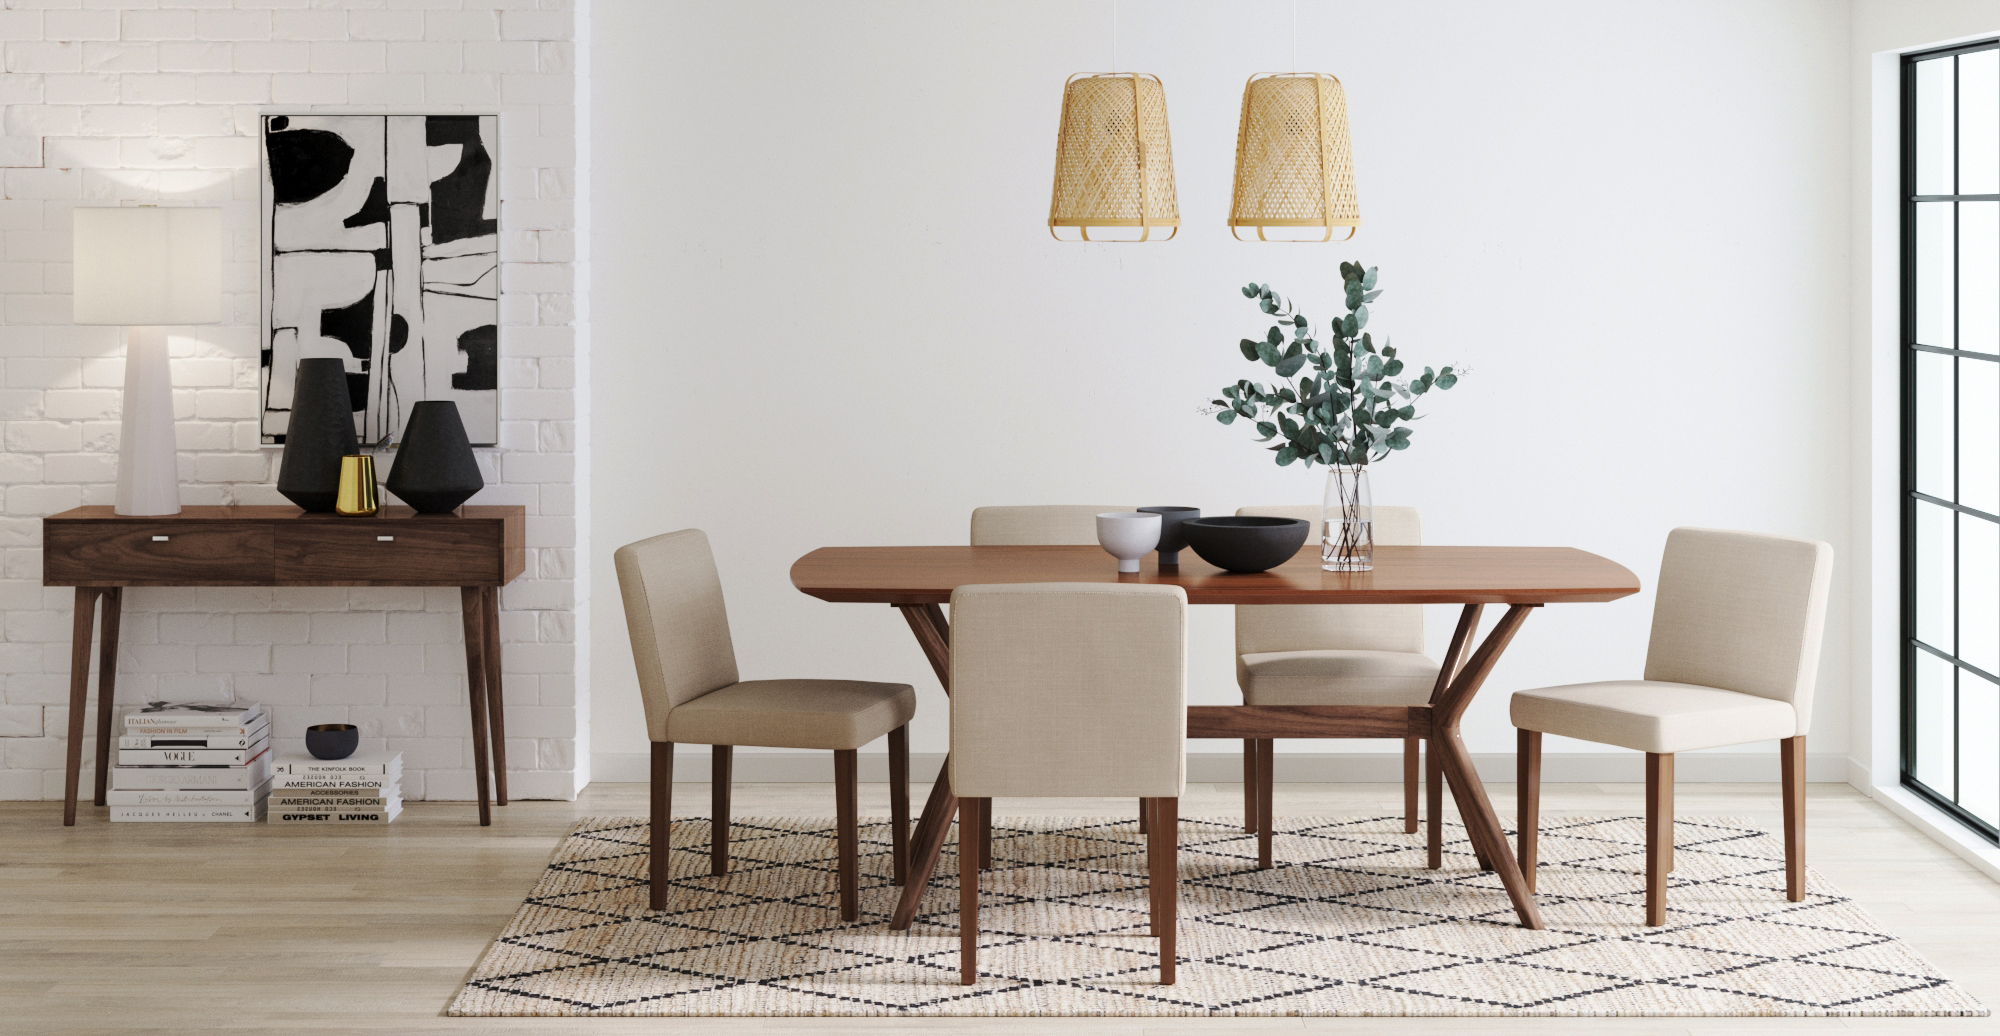 Brosa Olsen Dining Table styled in modern contemporary dining room